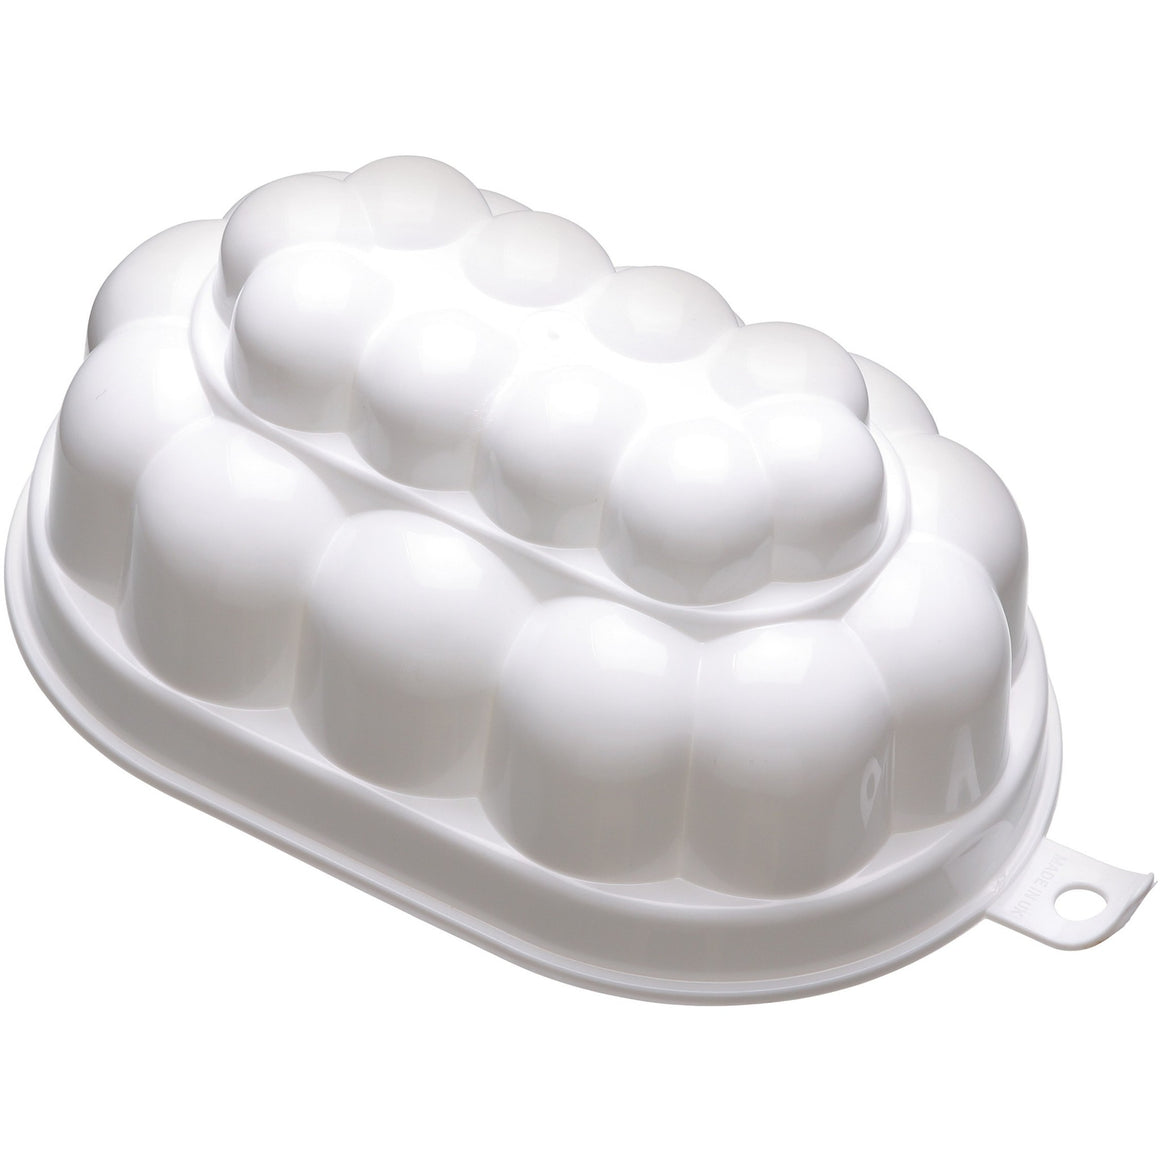 Kitchen Craft 0.5 Litre Jelly Mould